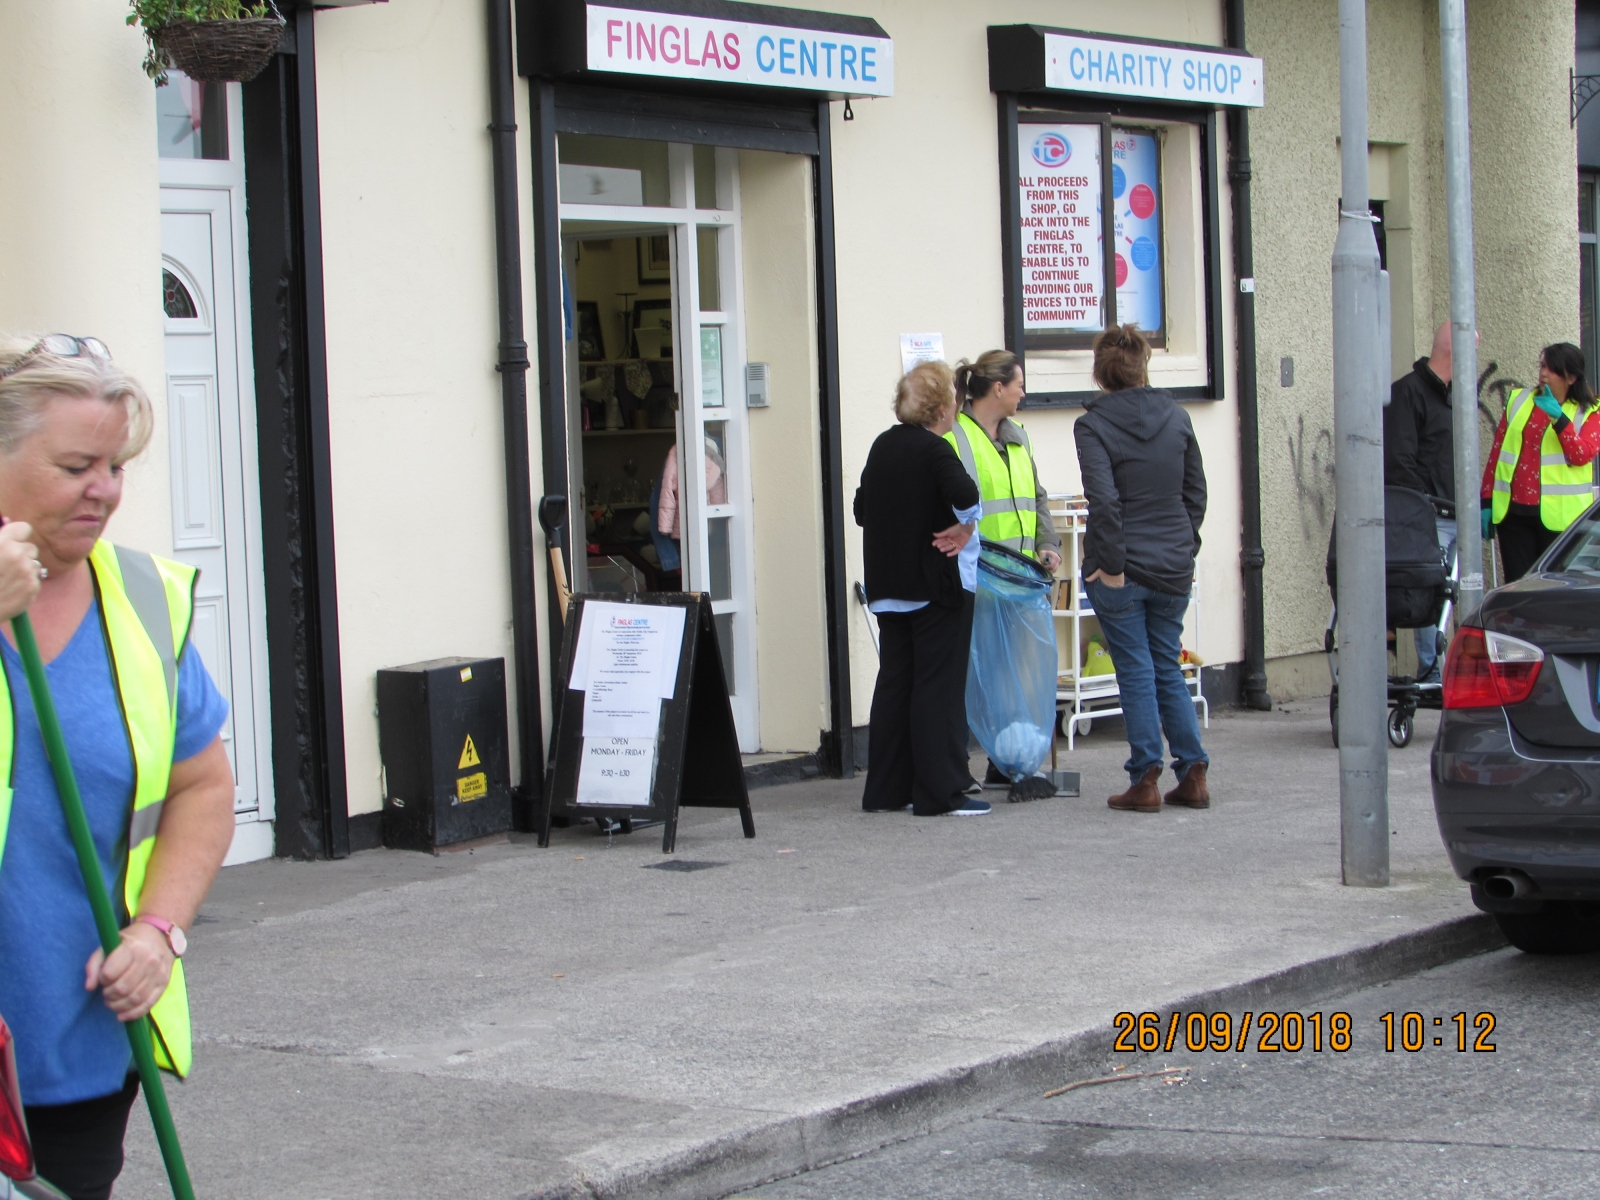 CLEANING UP THE FINGLAS AREA